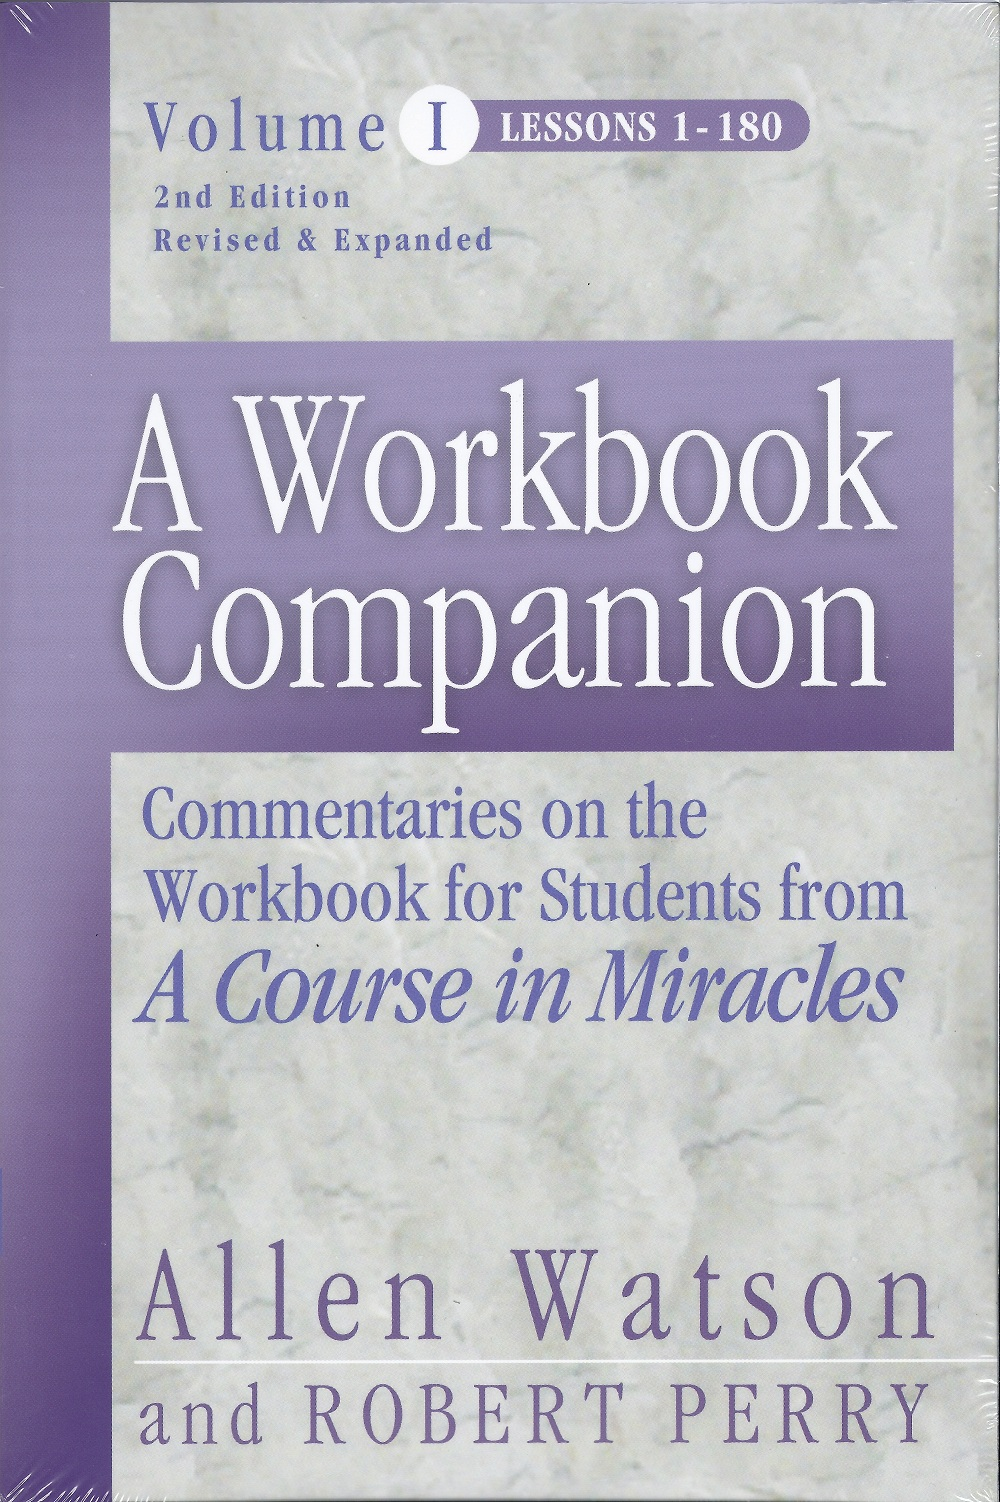 A Workbook Companion Vol. I